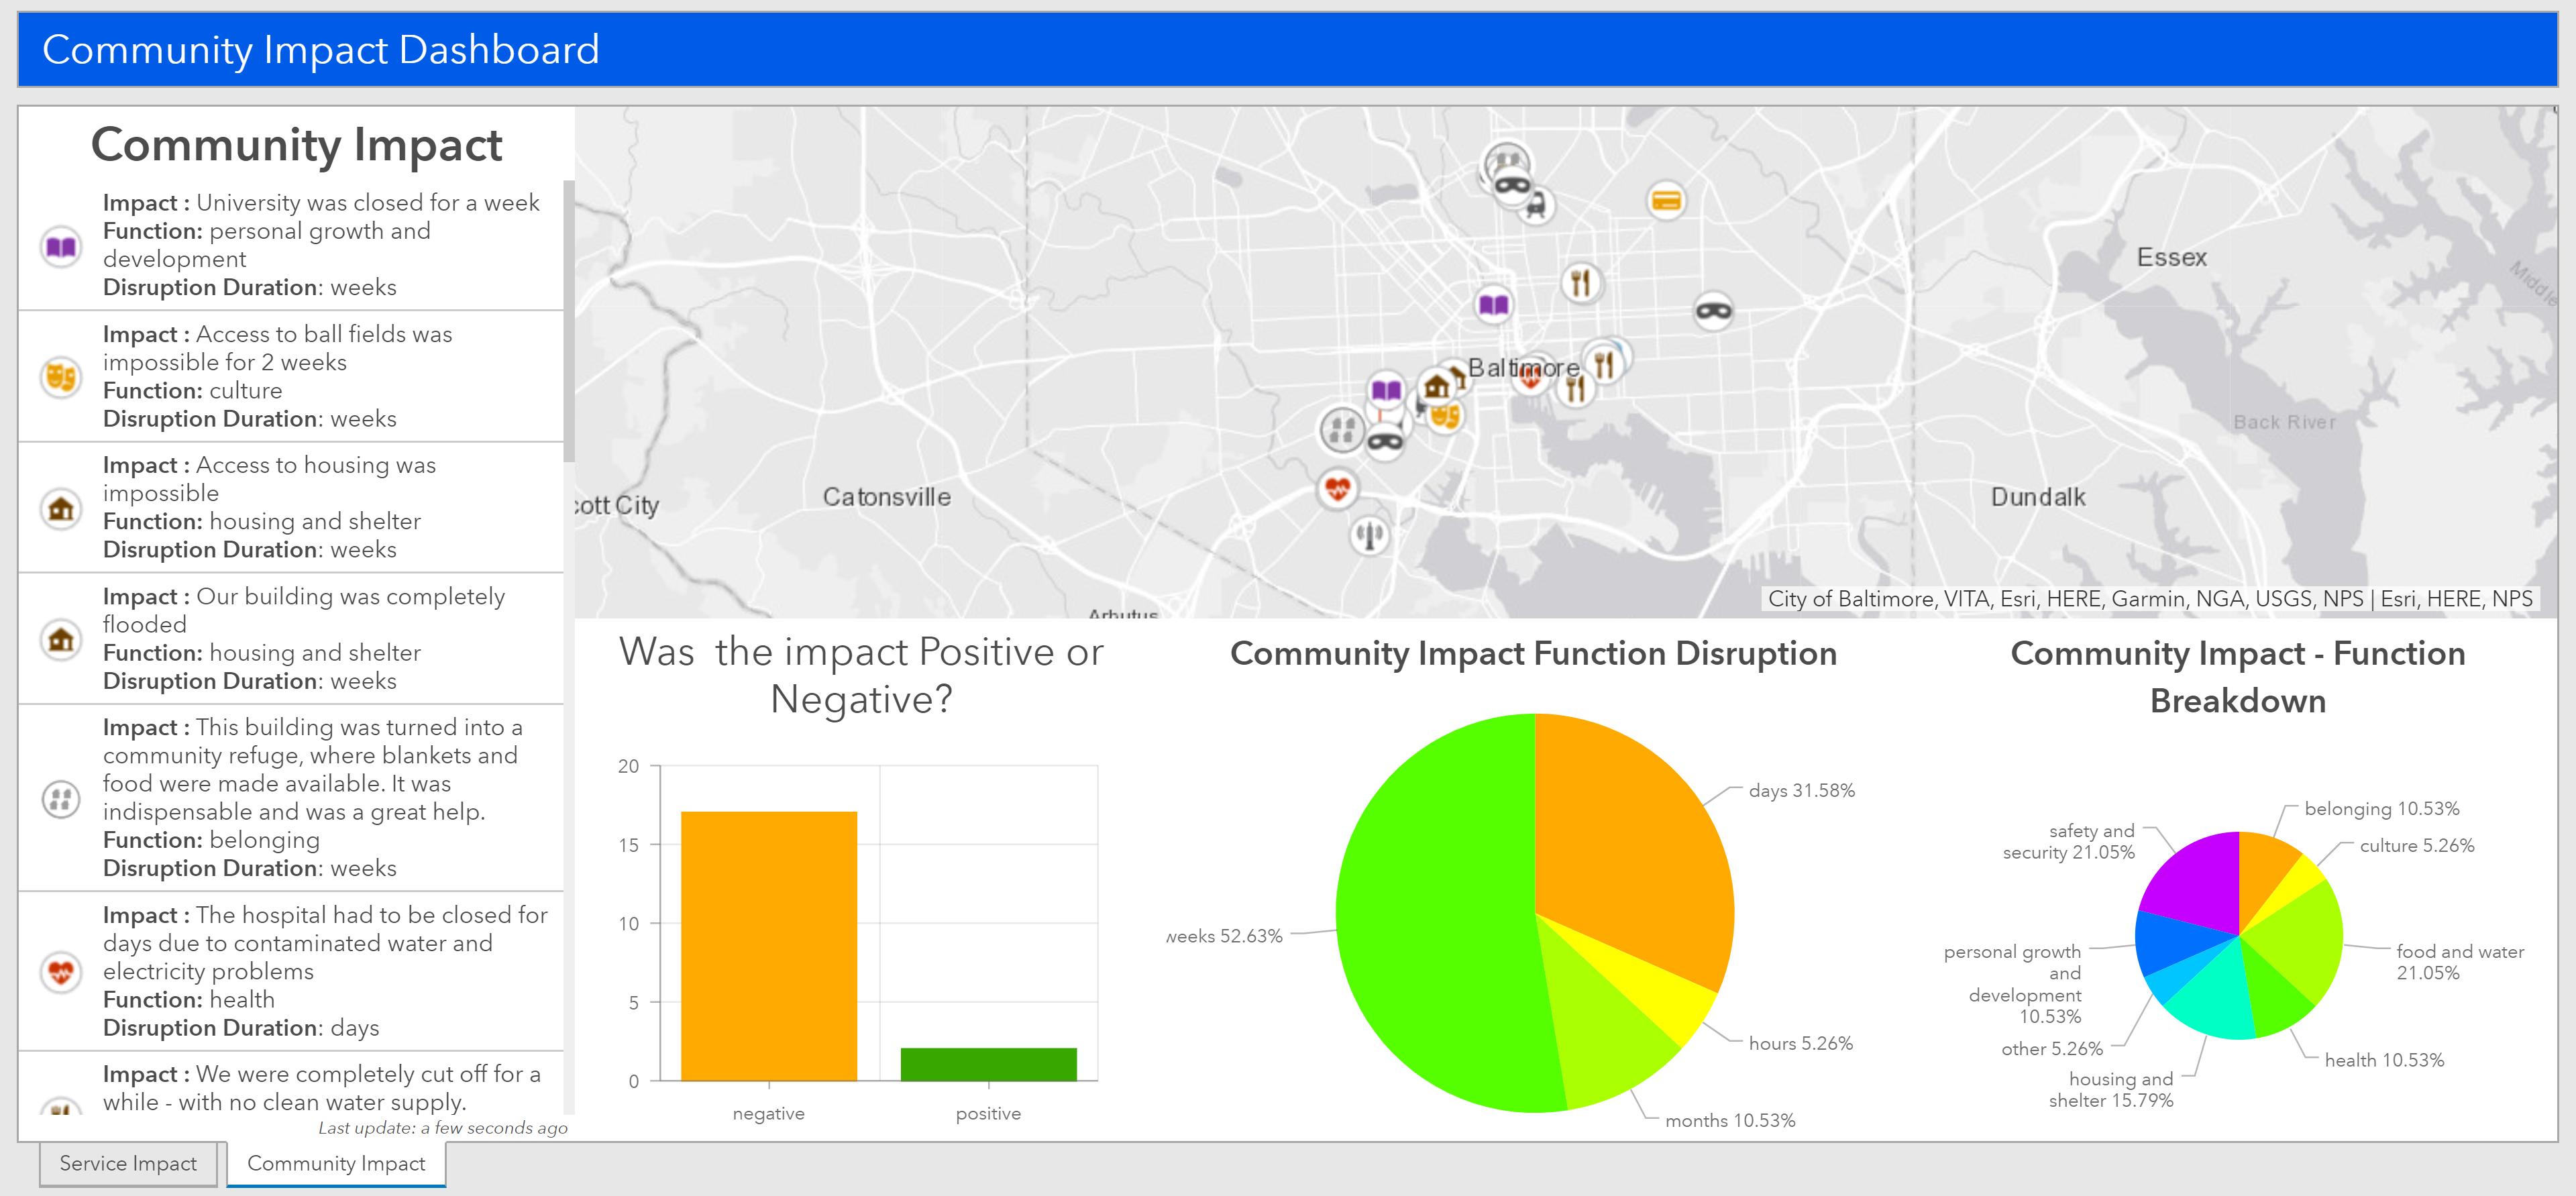 Community Impact Dashboard Web Application